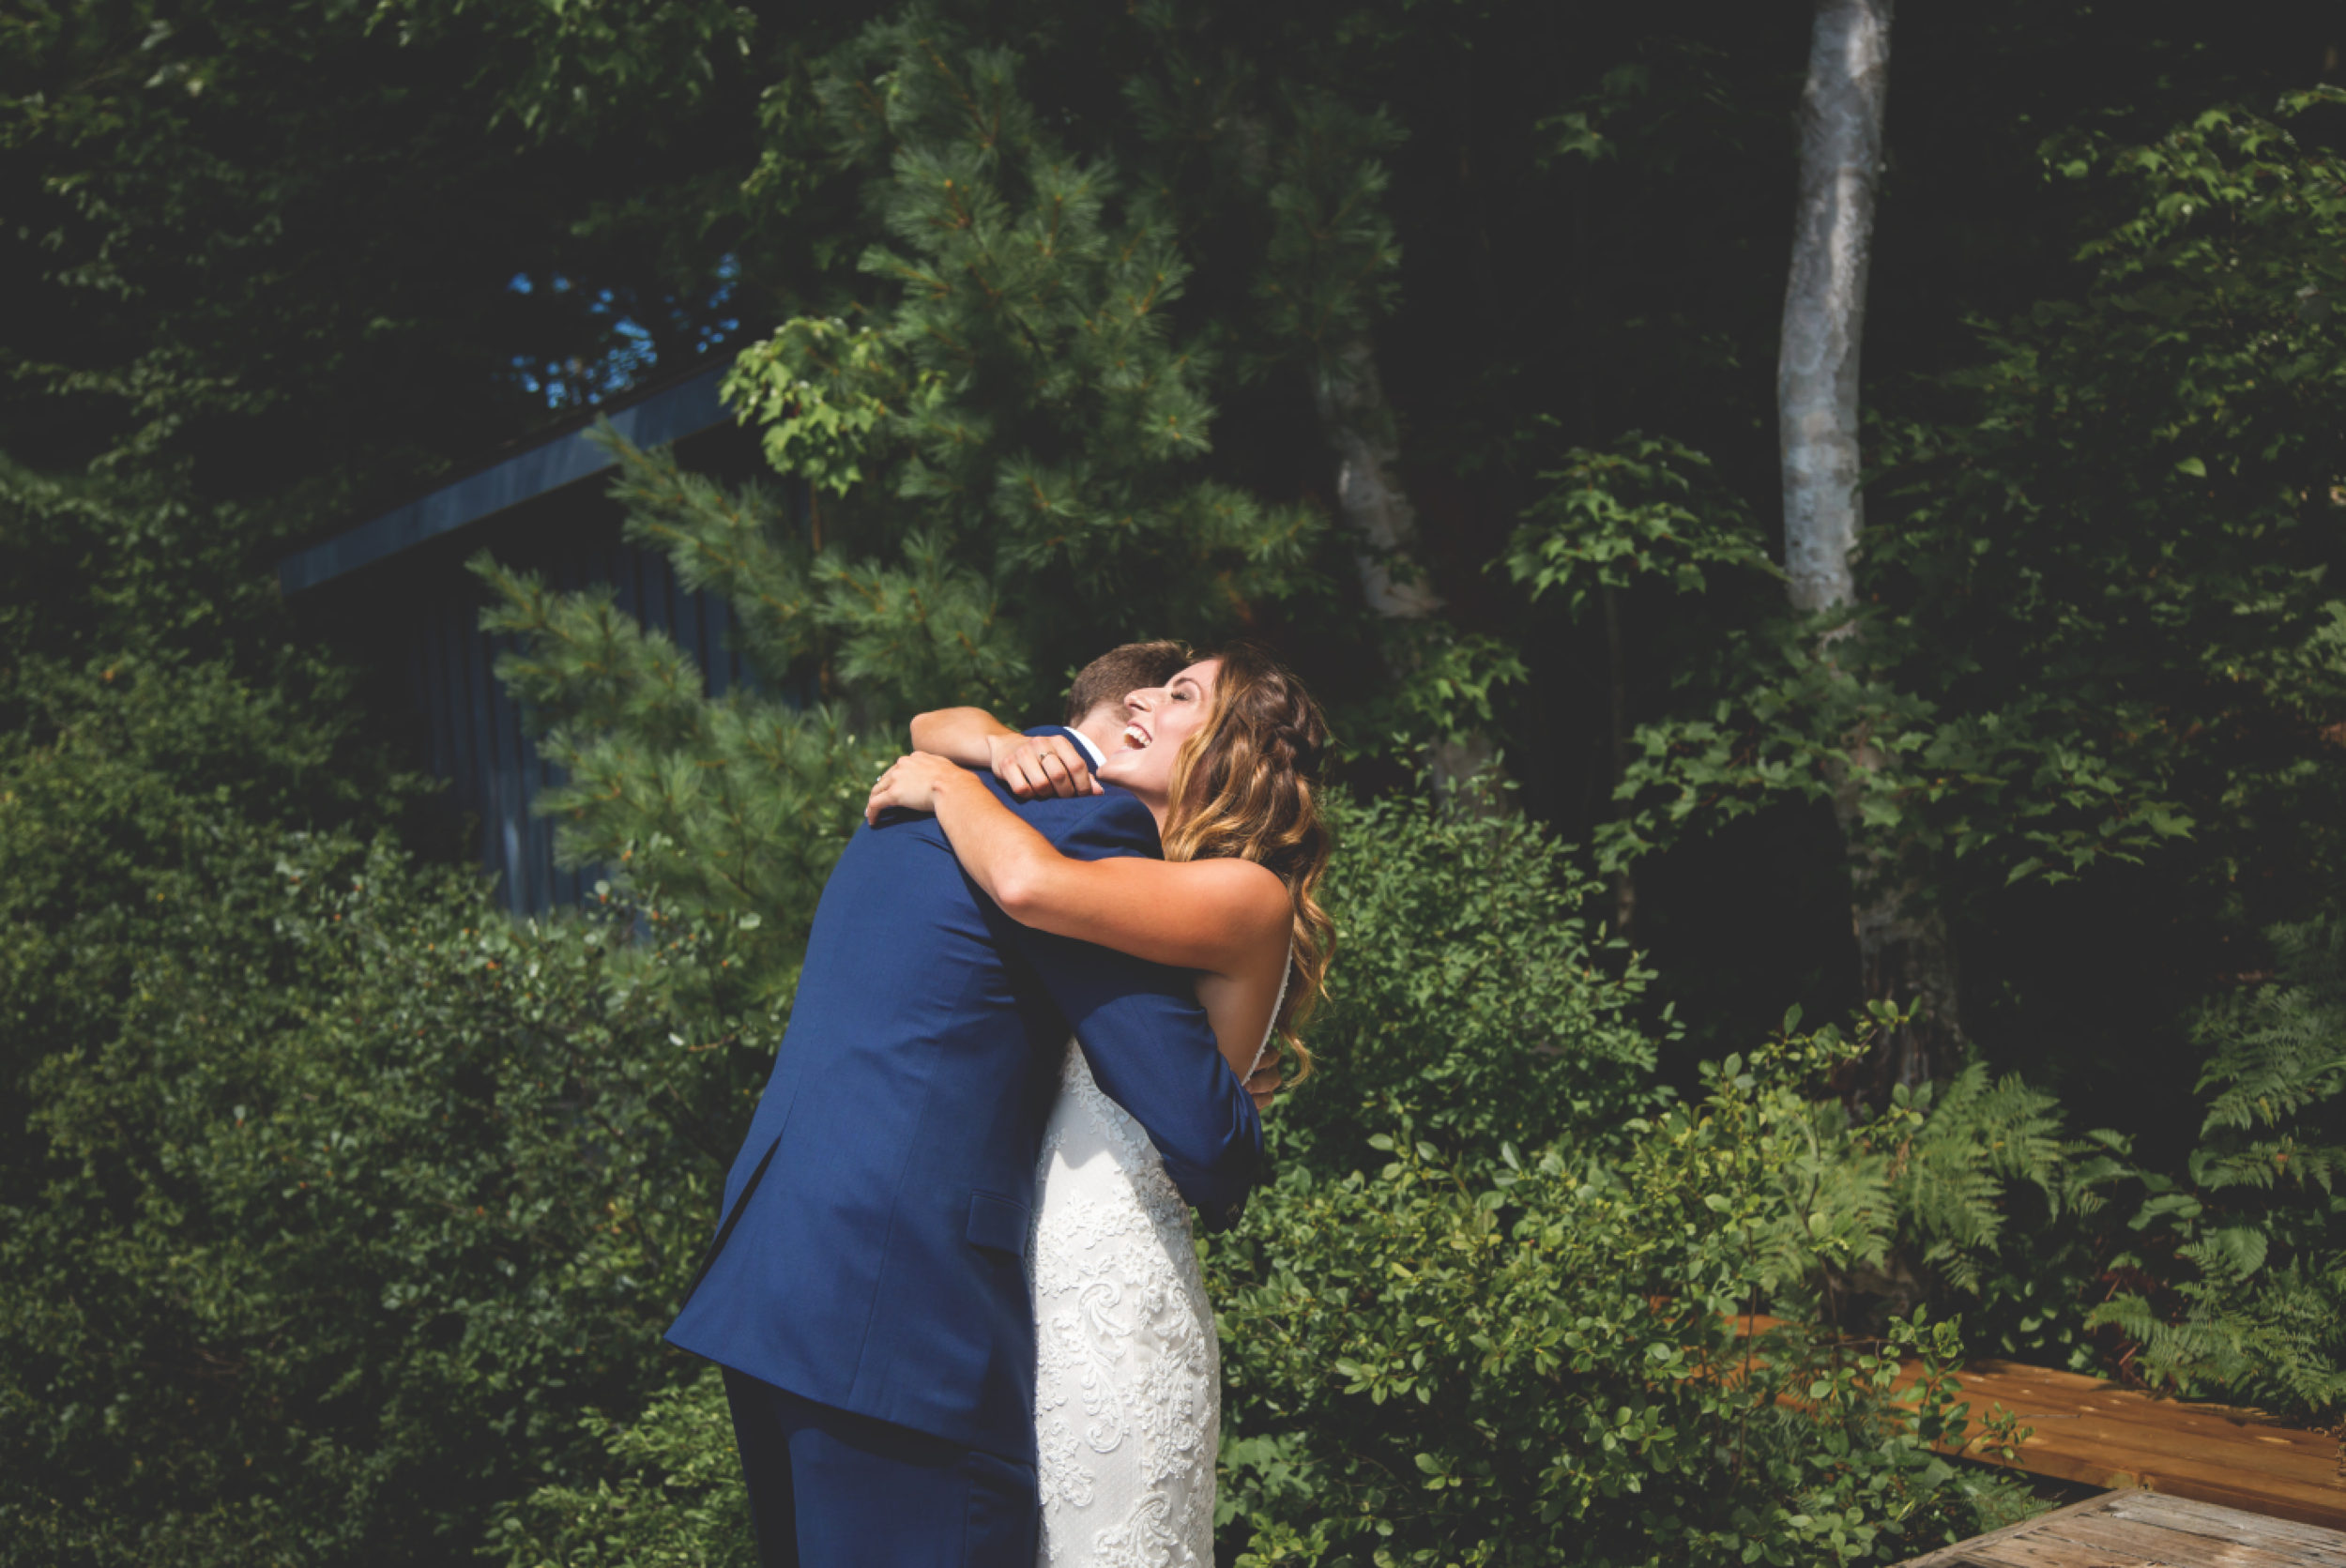 Wedding-Photos-Muskoka-Clevelands-House-Photographer-Wedding-Hamilton-GTA-Niagara-Oakville-Moments-by-Lauren-Photography-Photo-Image-26.png